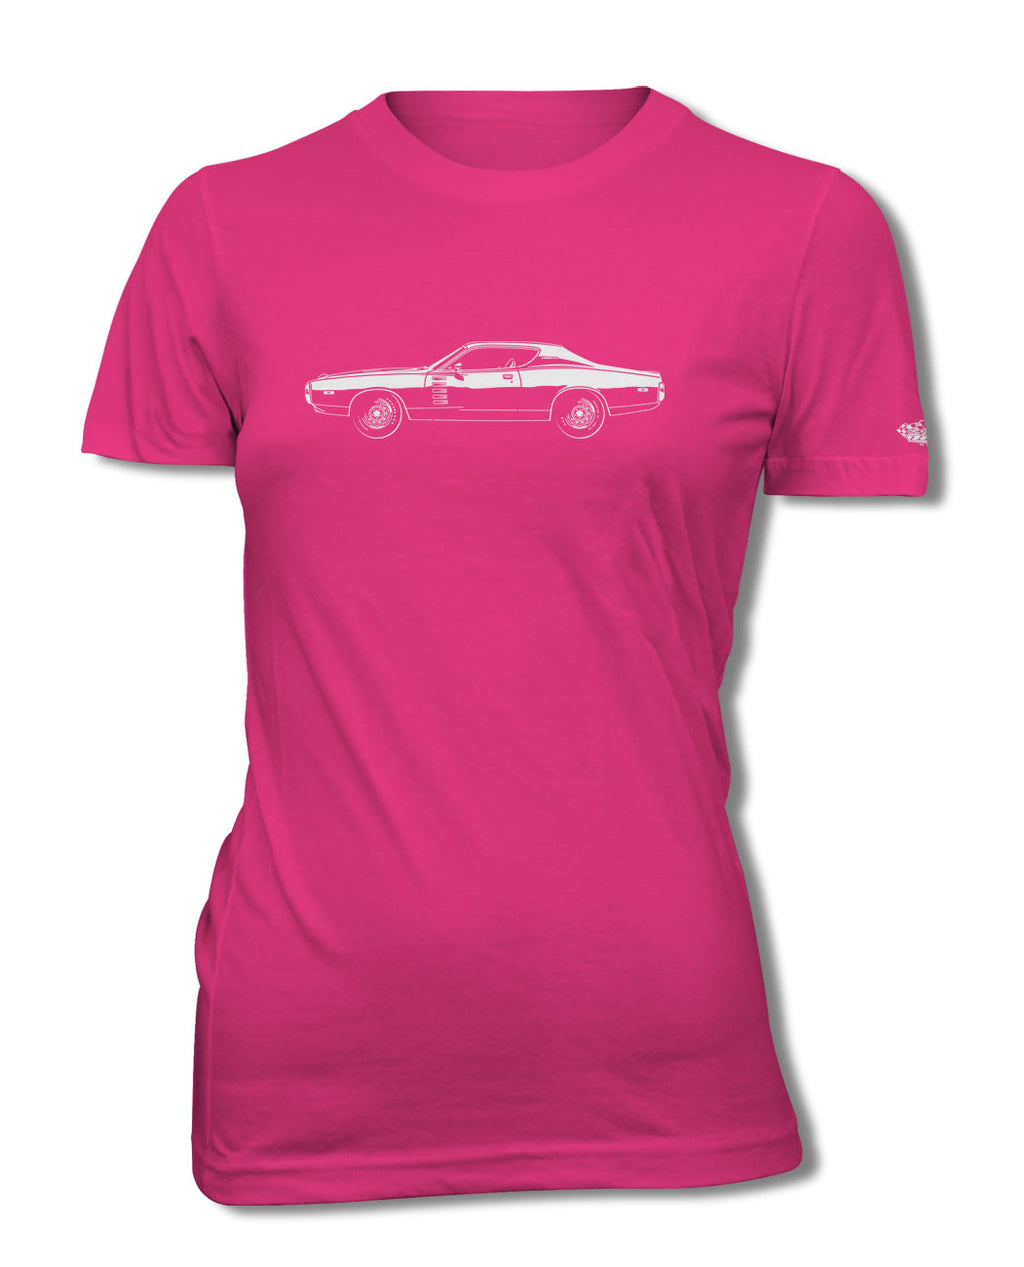 1972 Dodge Charger Rallye Coupe T-Shirt - Women - Side View